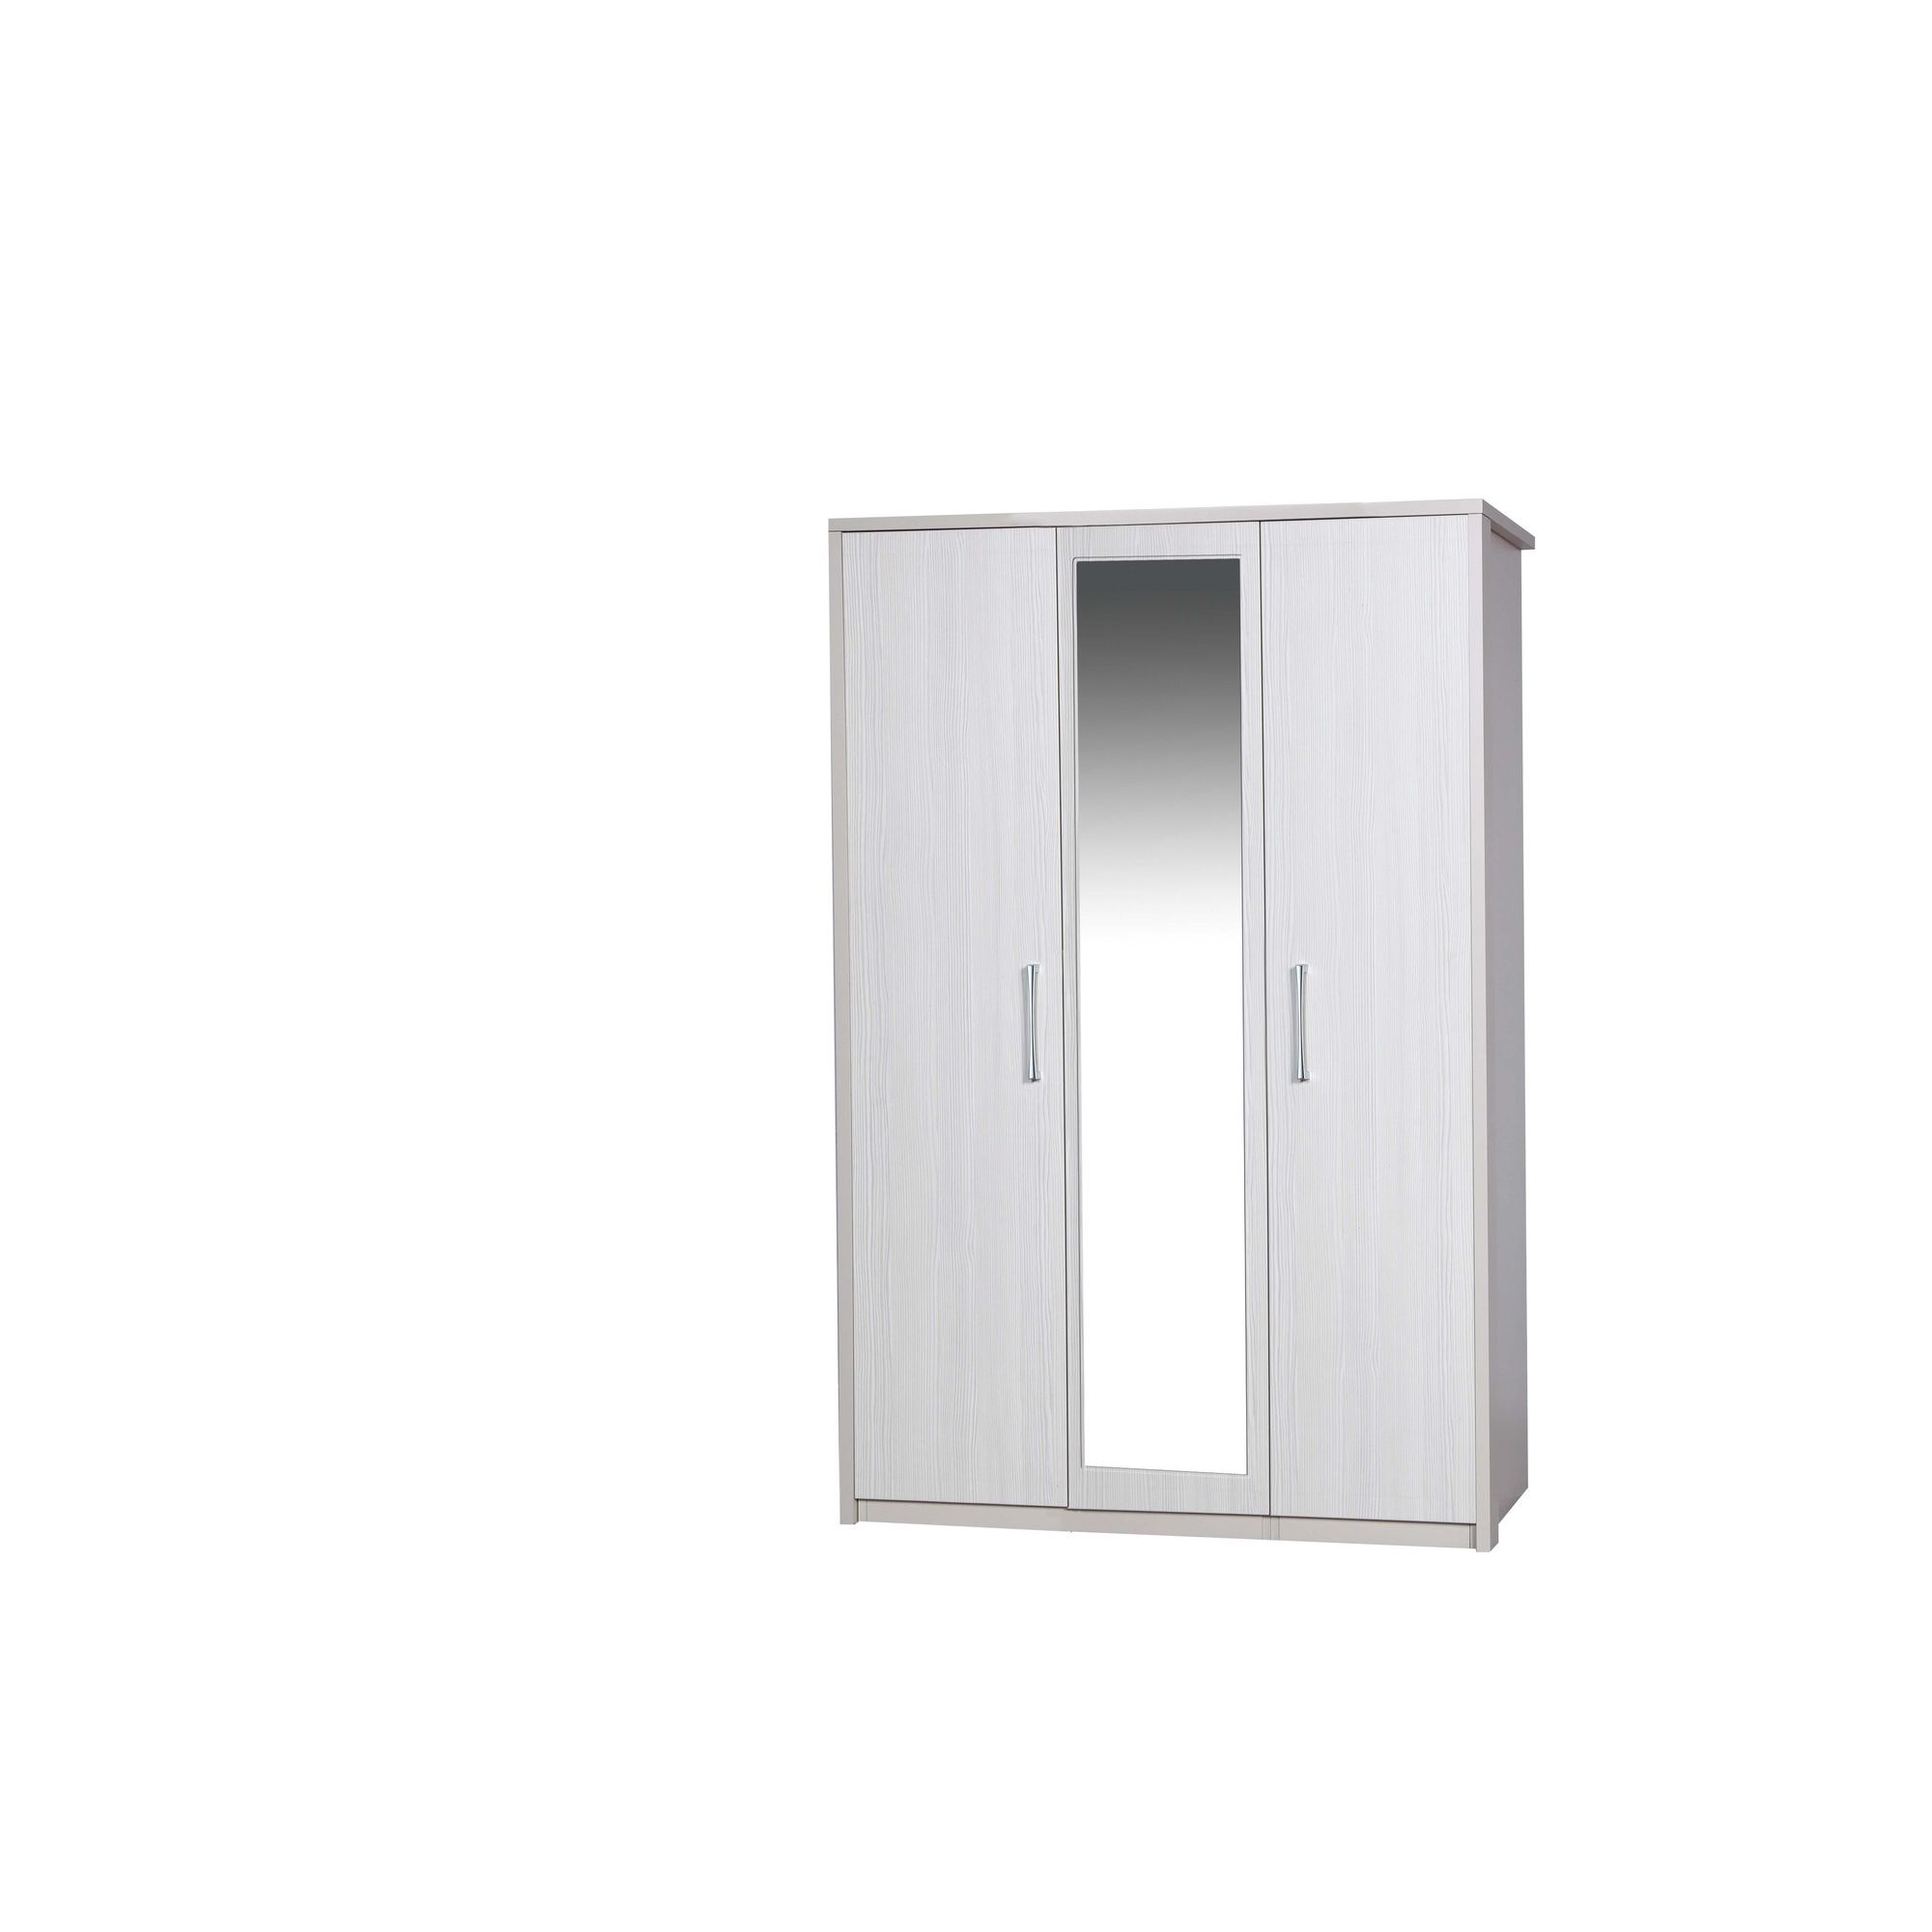 Alto Furniture Avola 3 Door Wardrobe with Mirror - Grey Carcass With White Avola at Tesco Direct